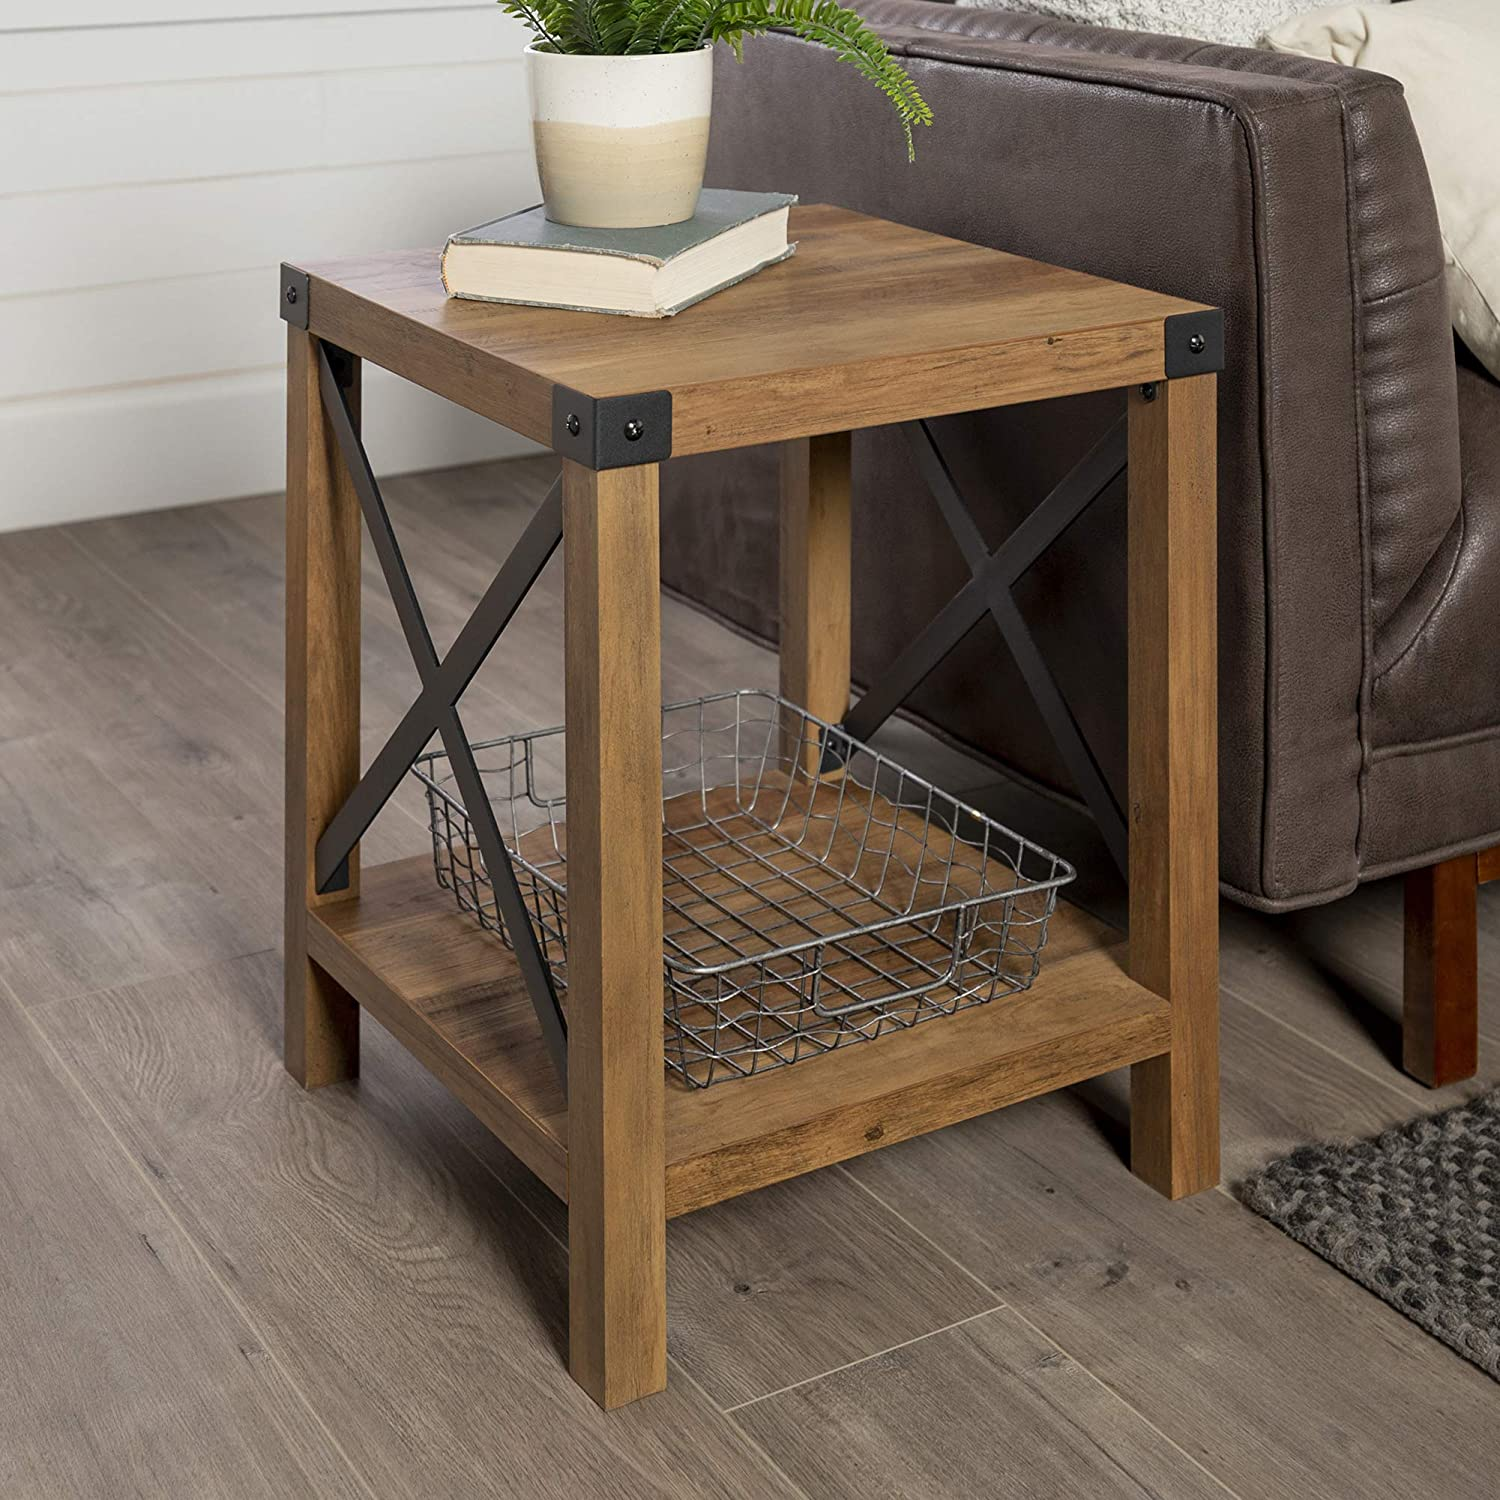 Walker Edison Furniture Company Rustic Modern Farmhouse Metal And Wood Square Side Accent Living Room Small End Table 18 Inch Reclaimed Barnwood Walmart Com Walmart Com